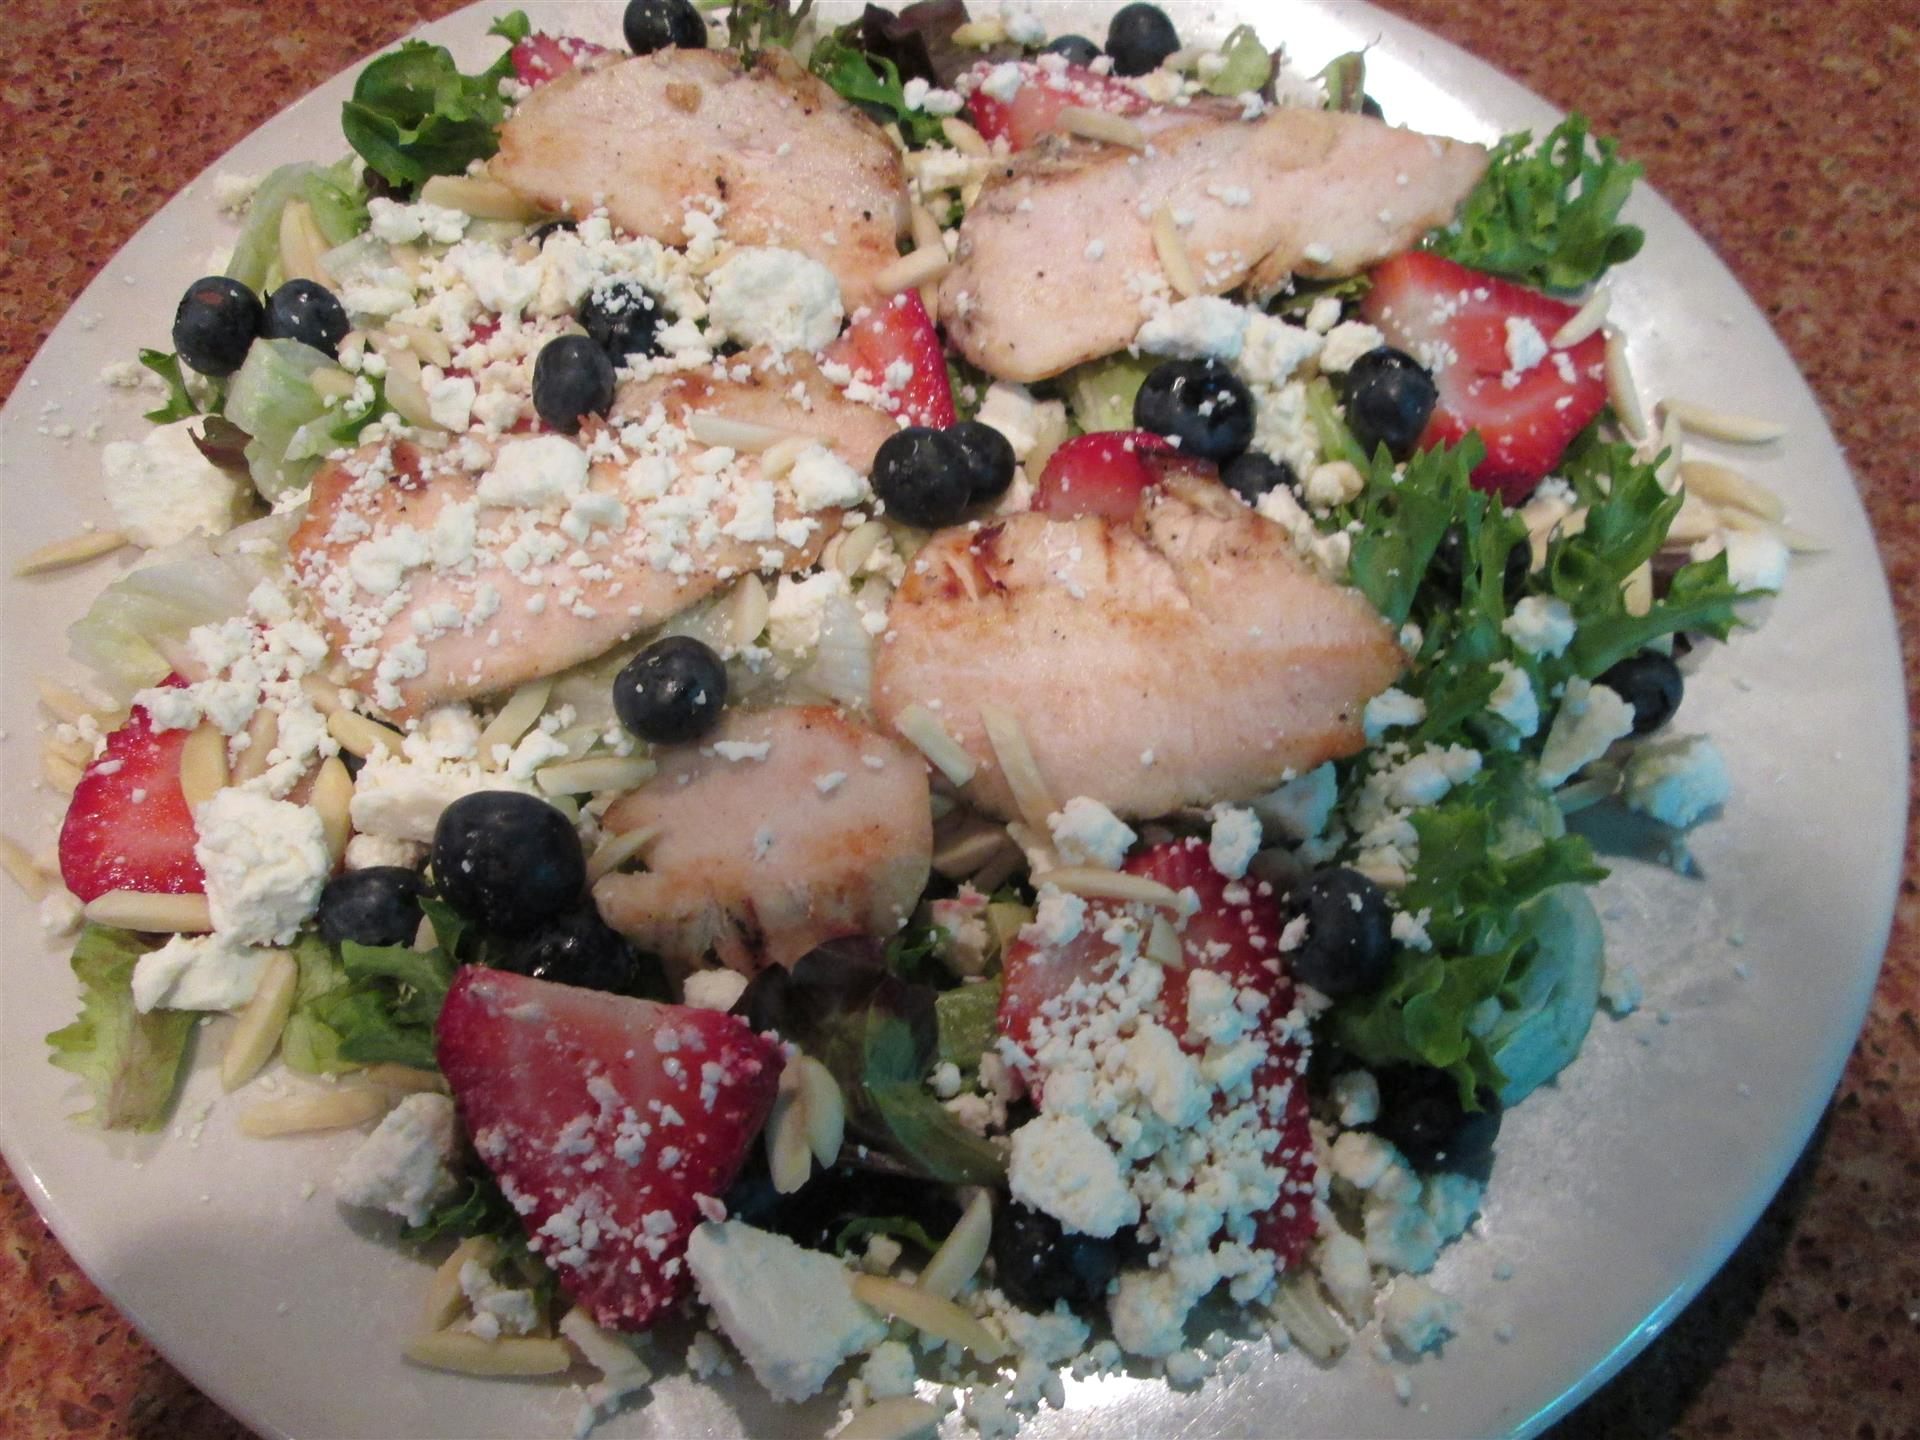 salad with chicken, feta, blueberries, strawberries